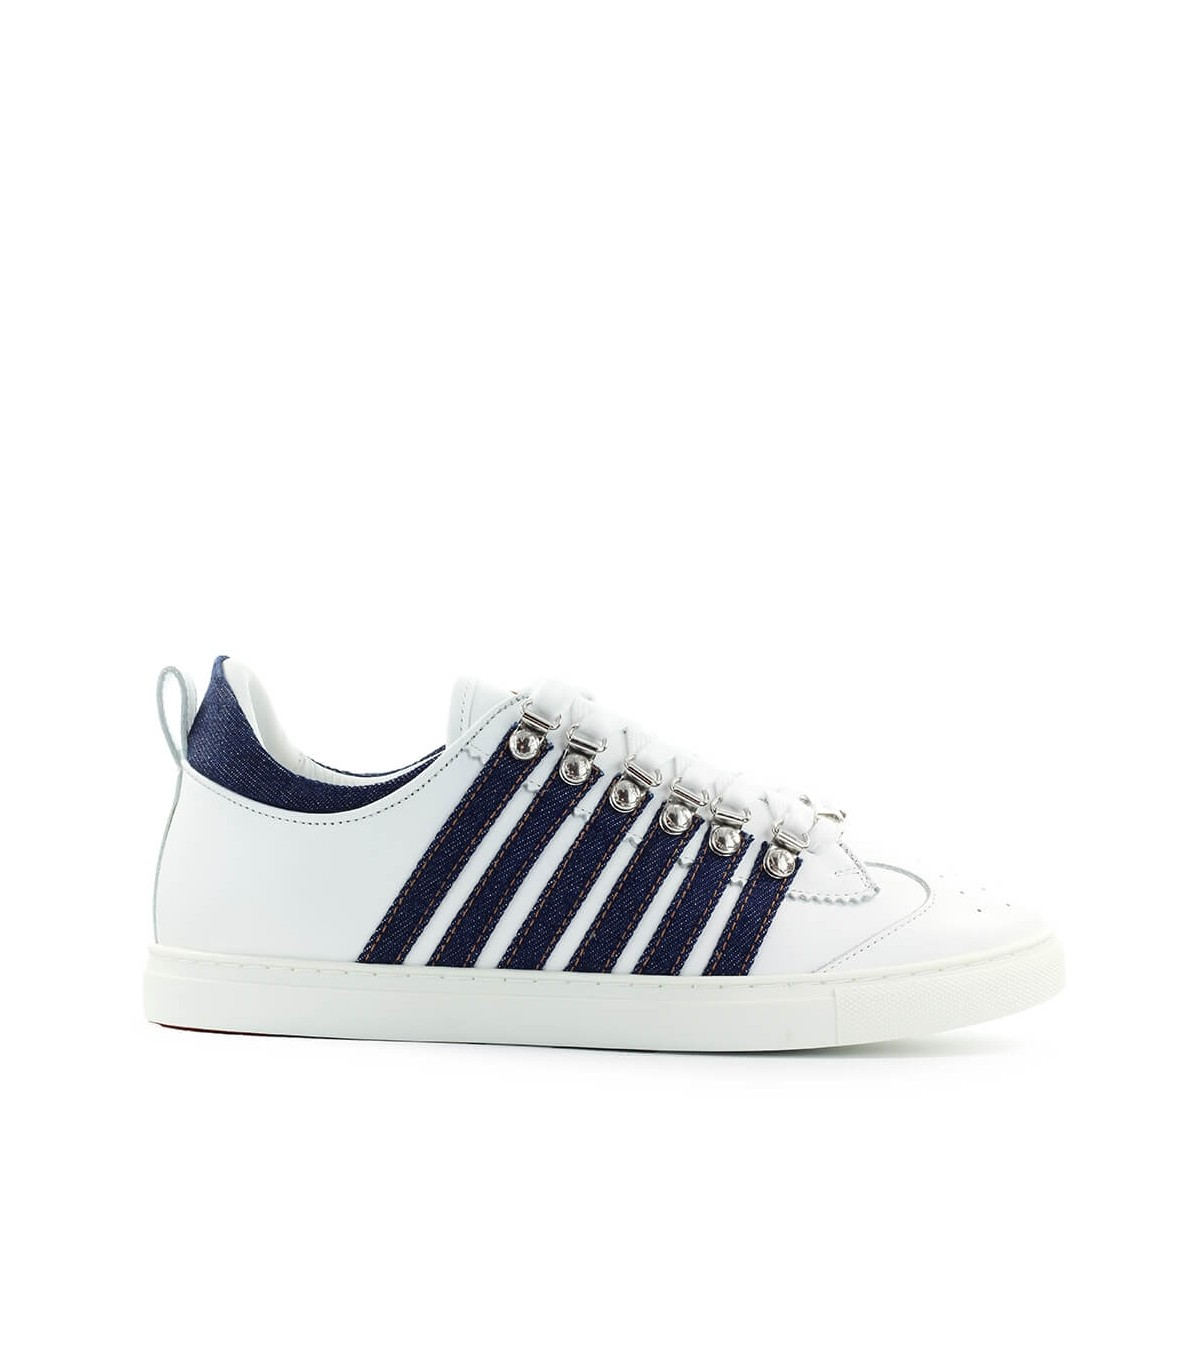 Dsquared2 Leathers LOW SOLE WHITE DENIM SNEAKER